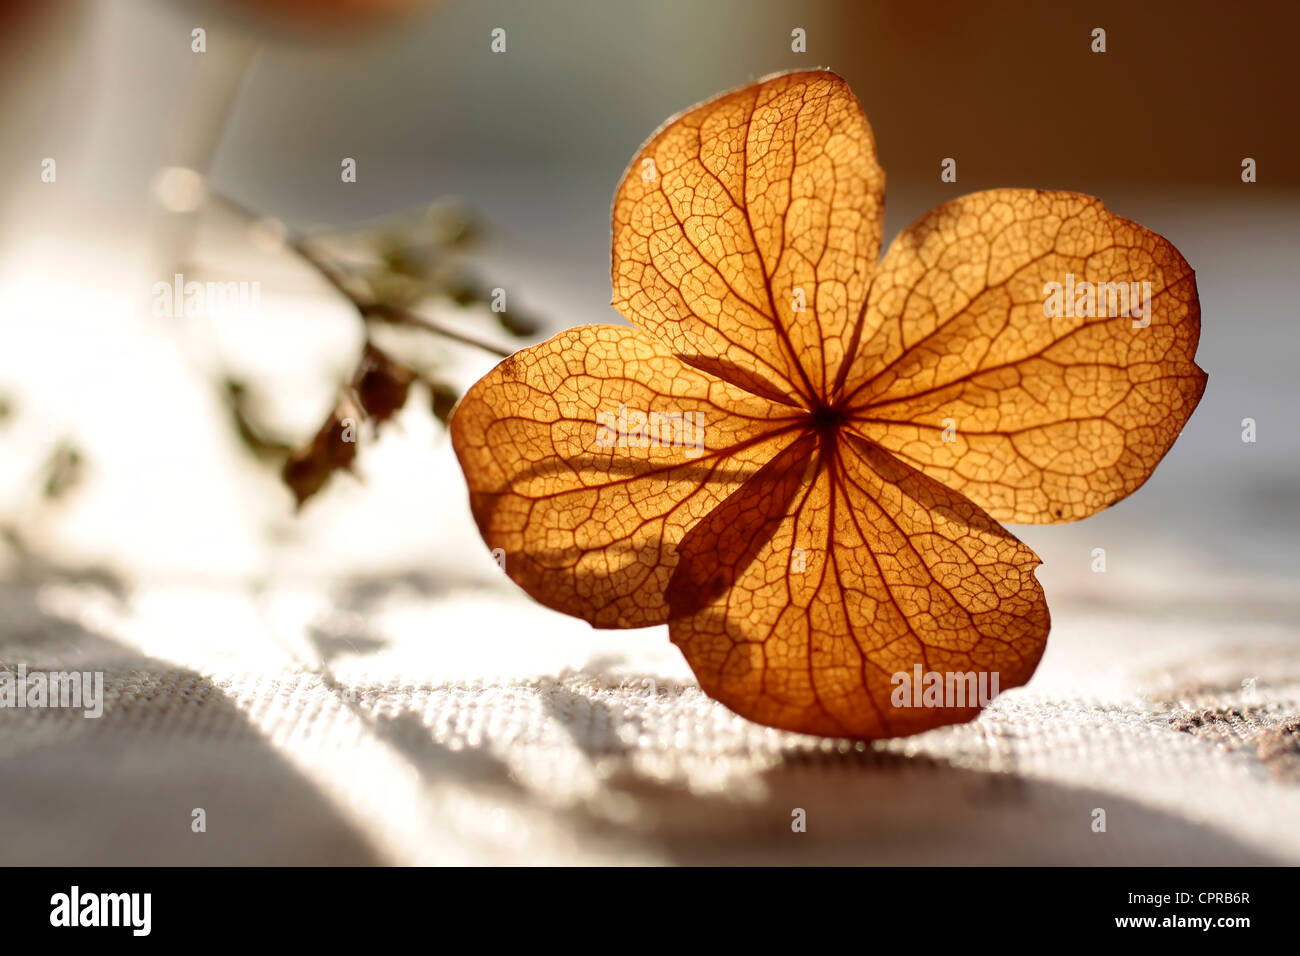 Autumn decoration with dried plant - Stock Image